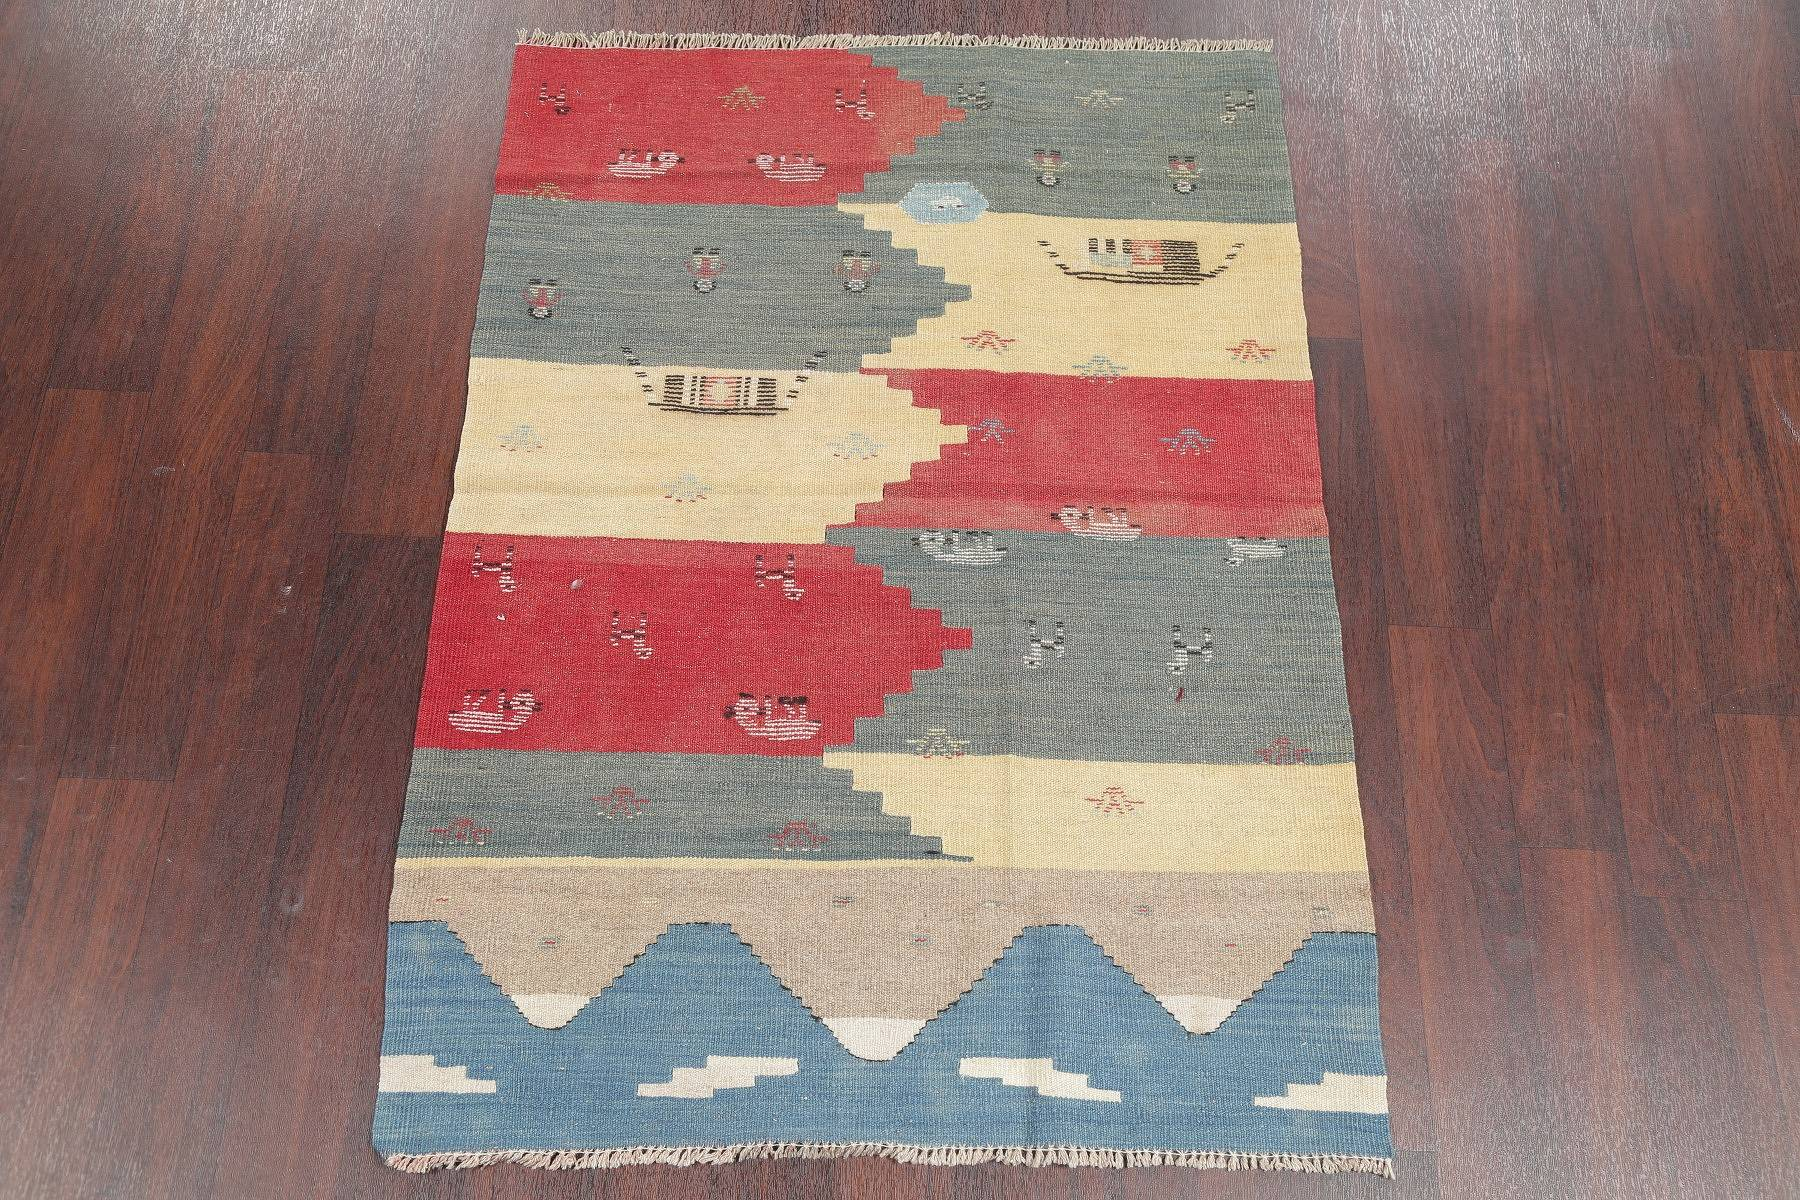 One-of-a-Kind Tribal Kilim Persian Hand-Woven 3x5 Wool Rug